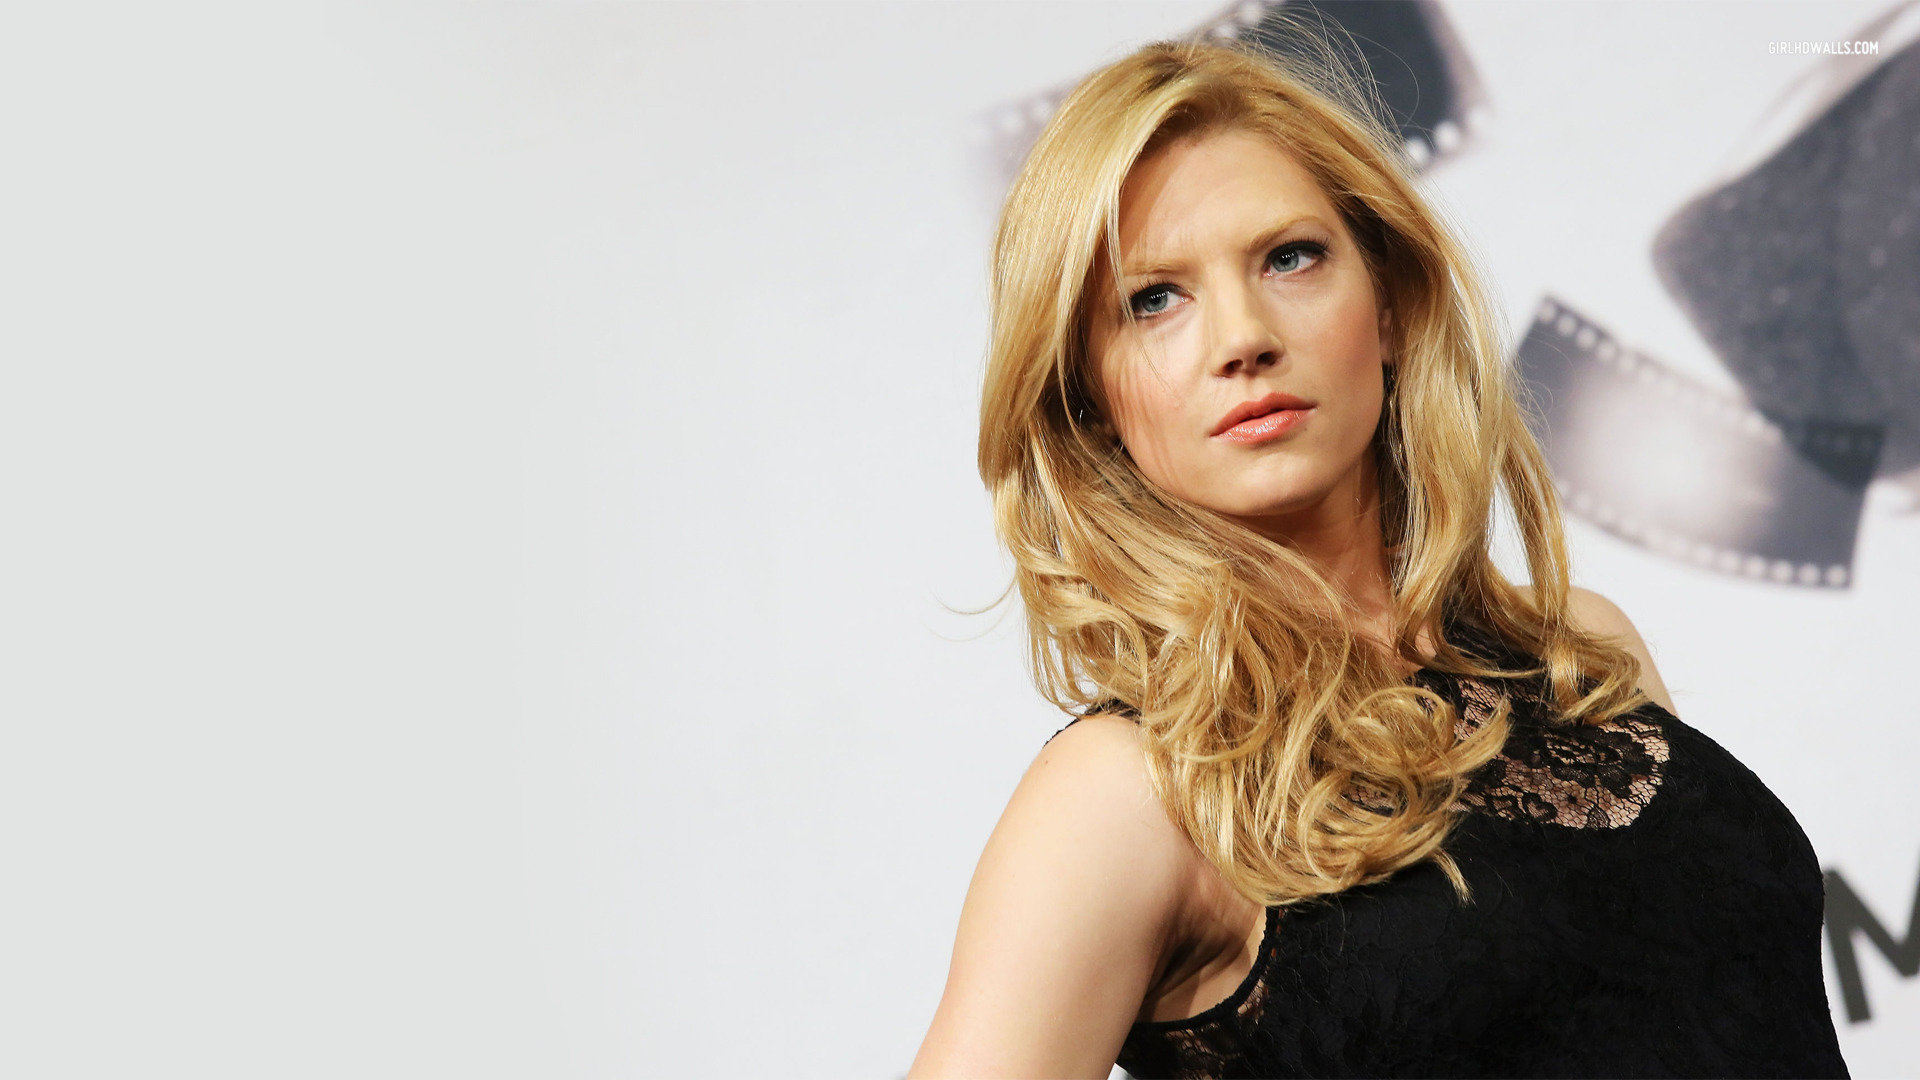 High resolution Katheryn Winnick full hd background ID:232587 for desktop